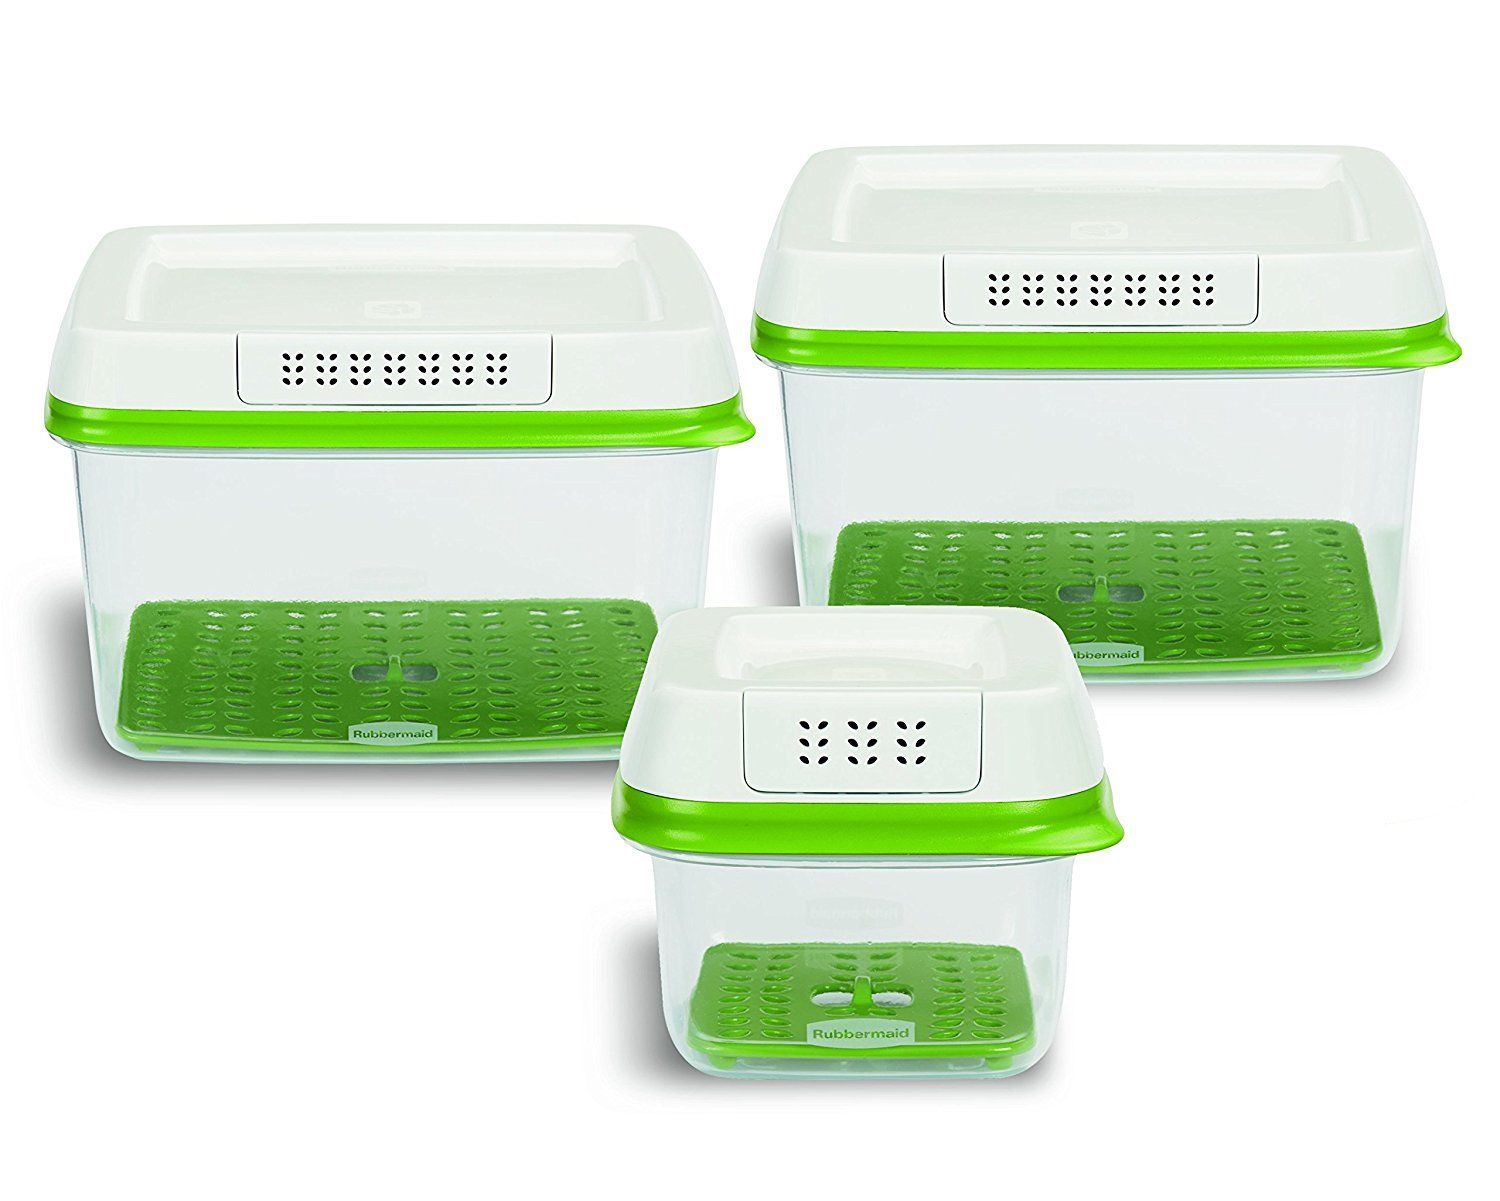 Rubbermaid FreshWorks Produce Saver Food Storage Containers, Set of 3 NEW NIB 1